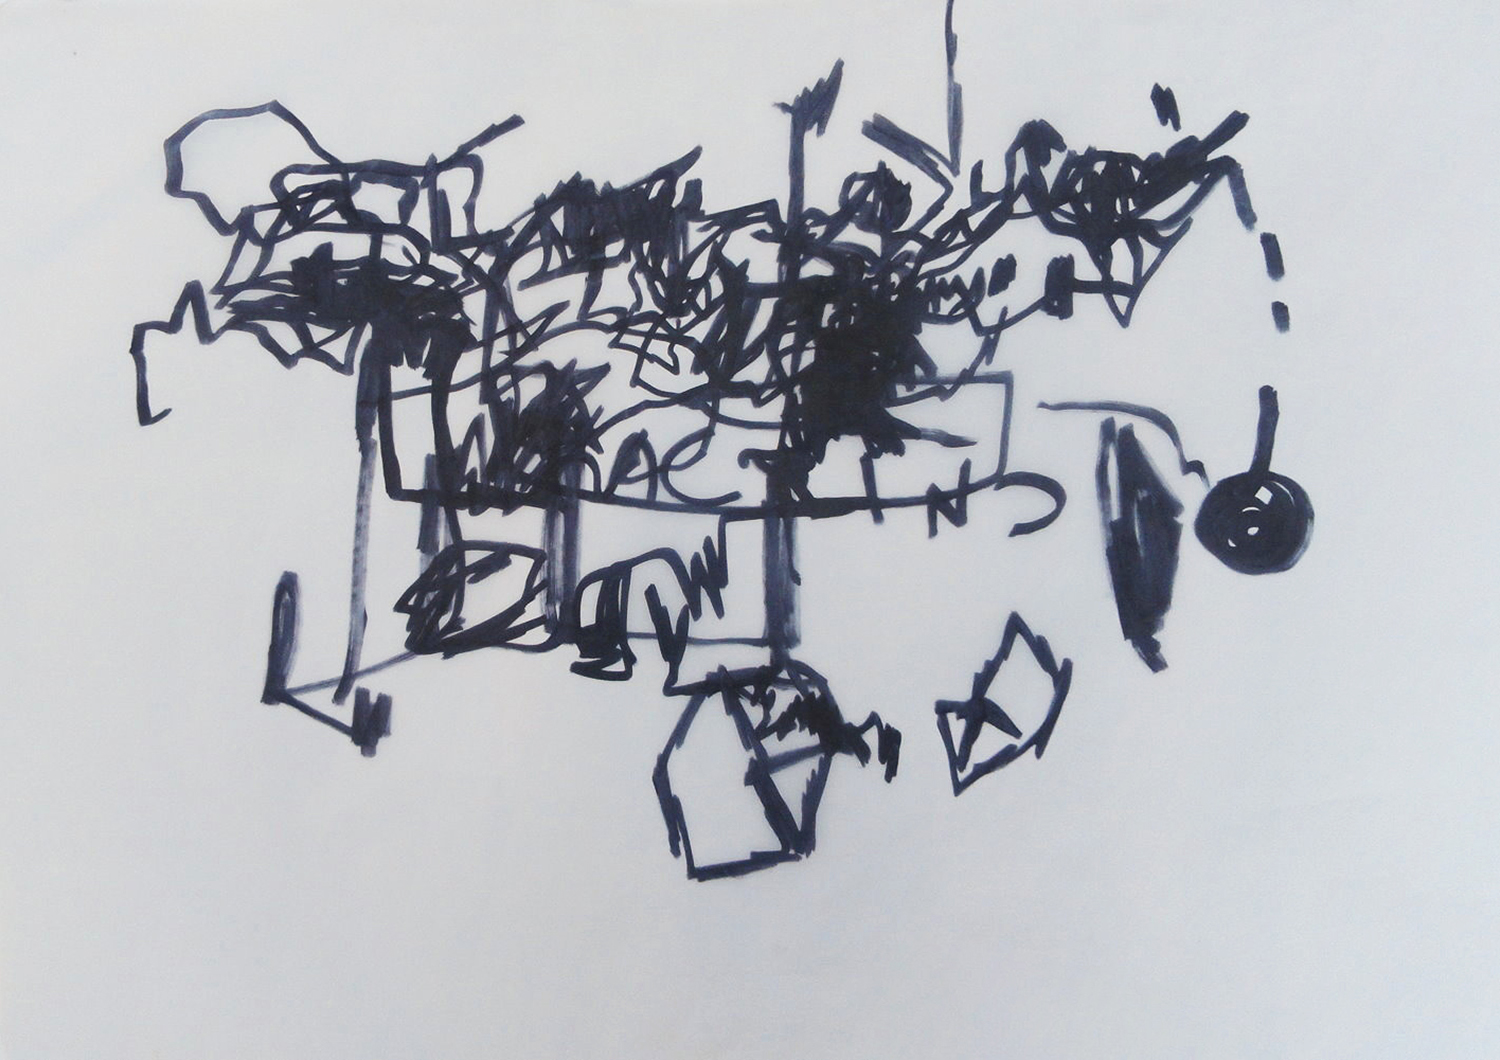 Untitled, 2008 - Marker on paper; 50 X 70 cm